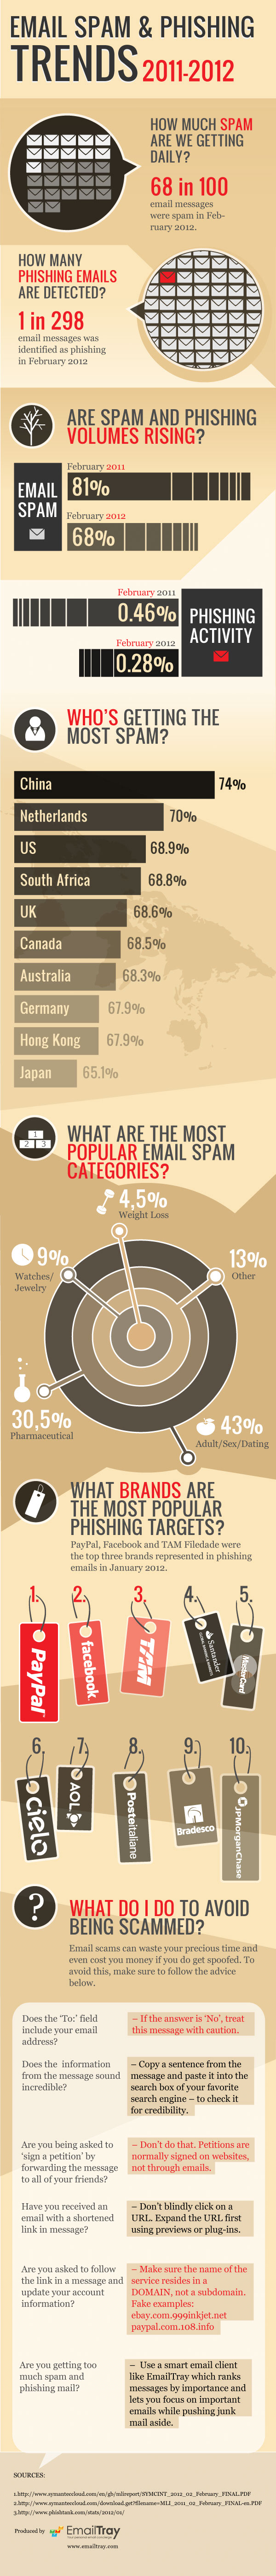 Email-Spam-And-Phishing-2012-infographic